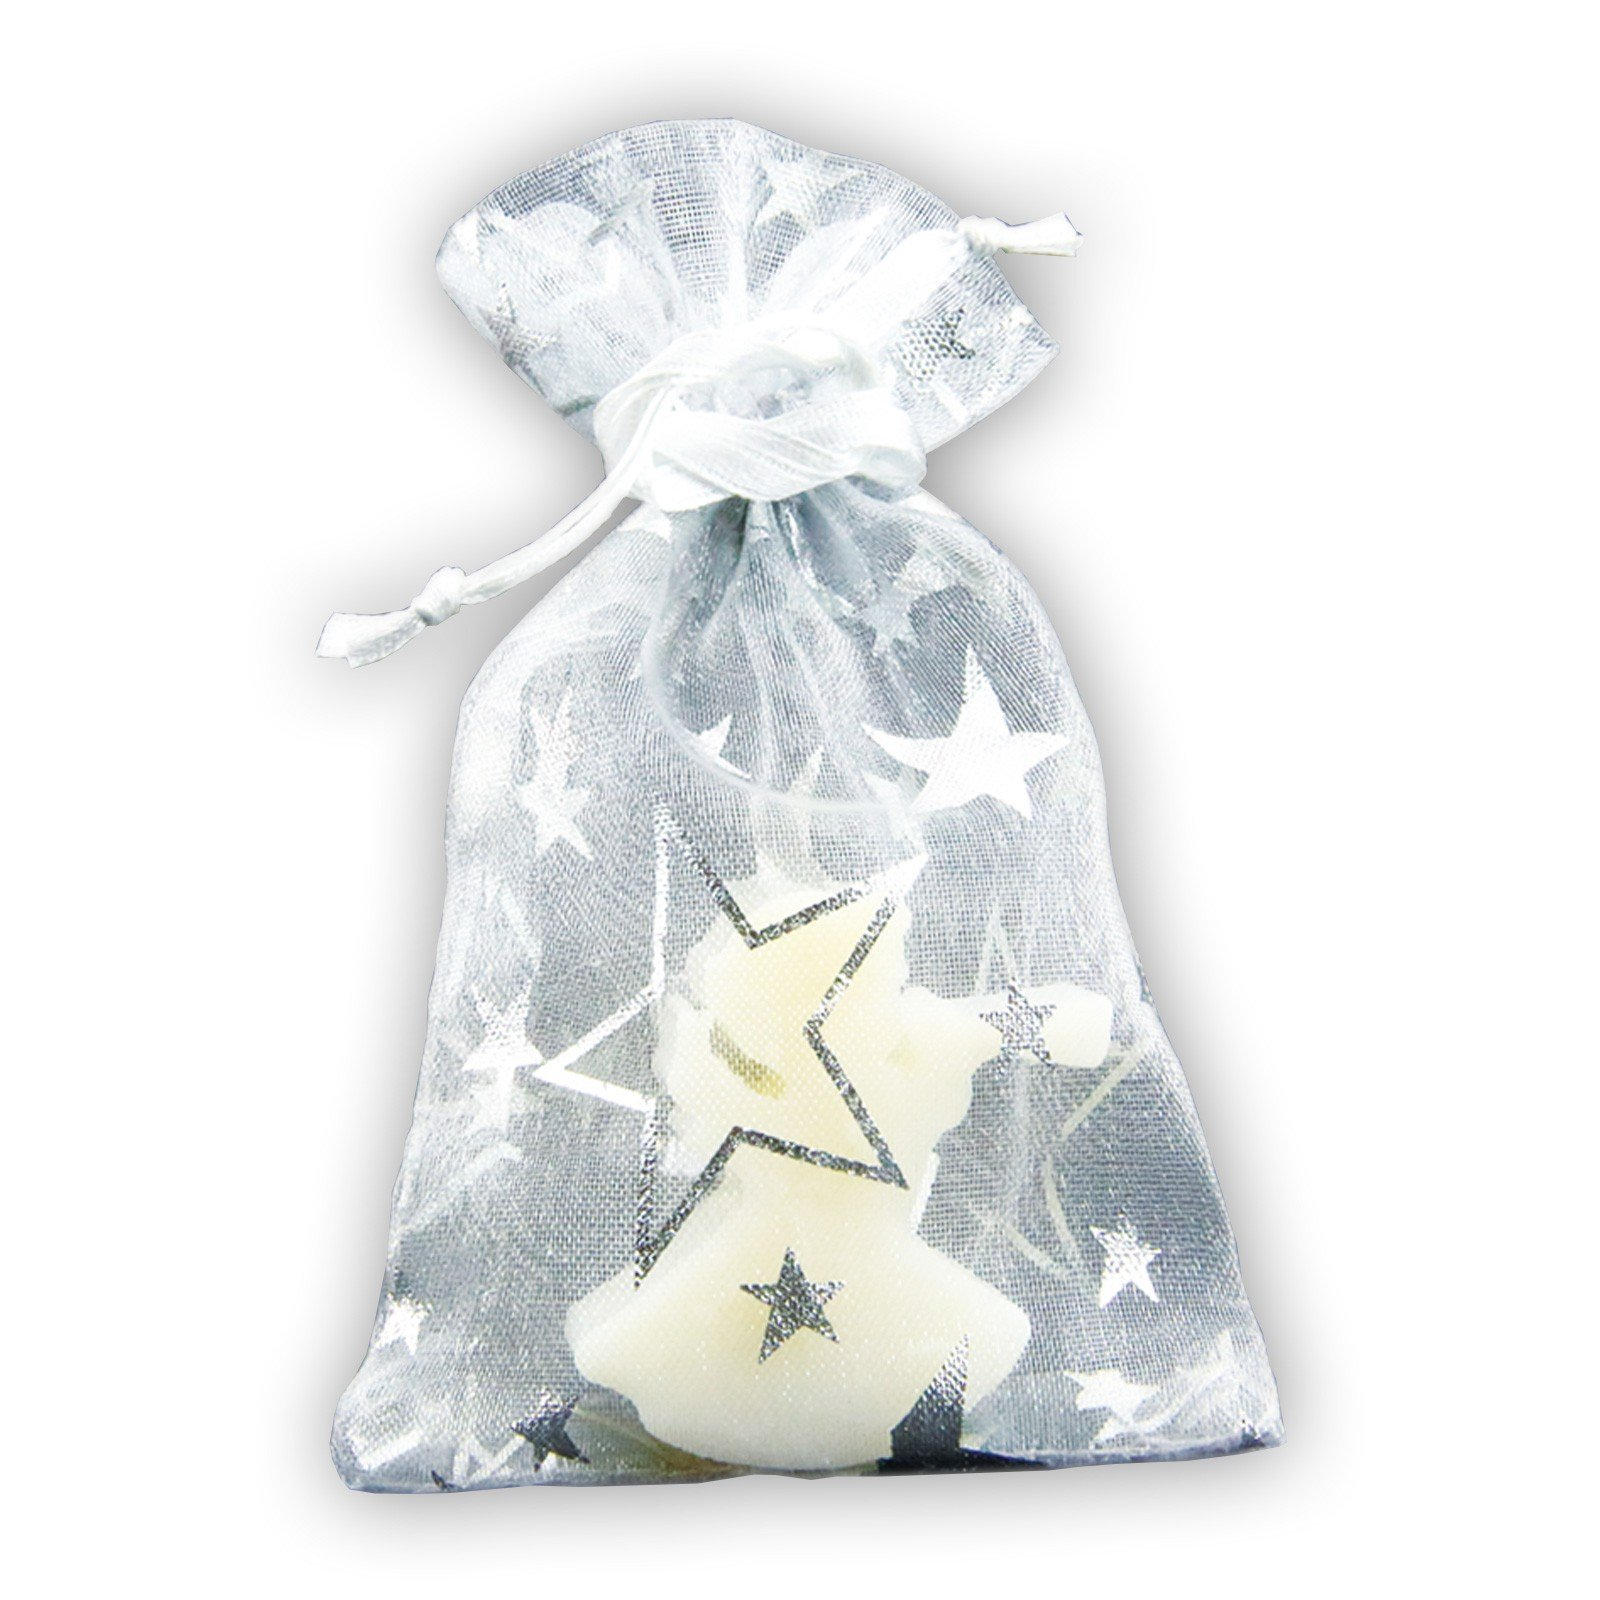 Angel Scented Soap in Mesh Gift Bag | beautygifts.de [en]